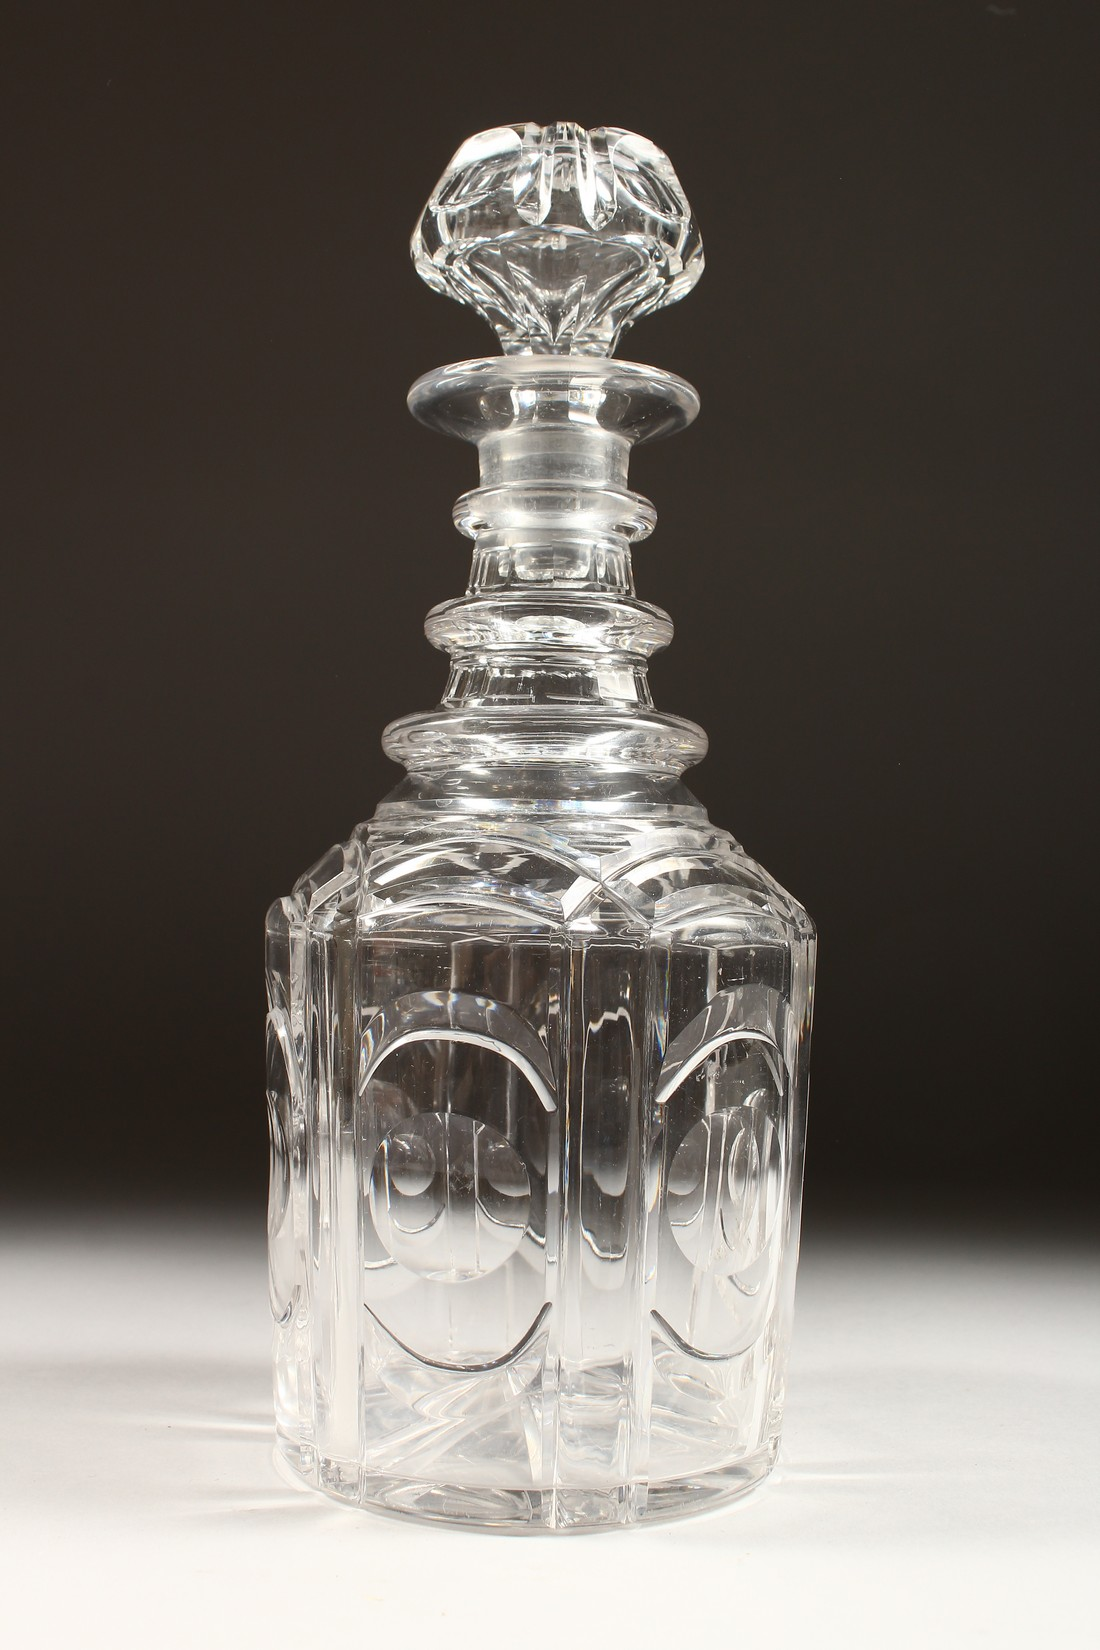 A HEXAGONAL CUT GLASS DECANTER AND STOPPER - Image 2 of 5